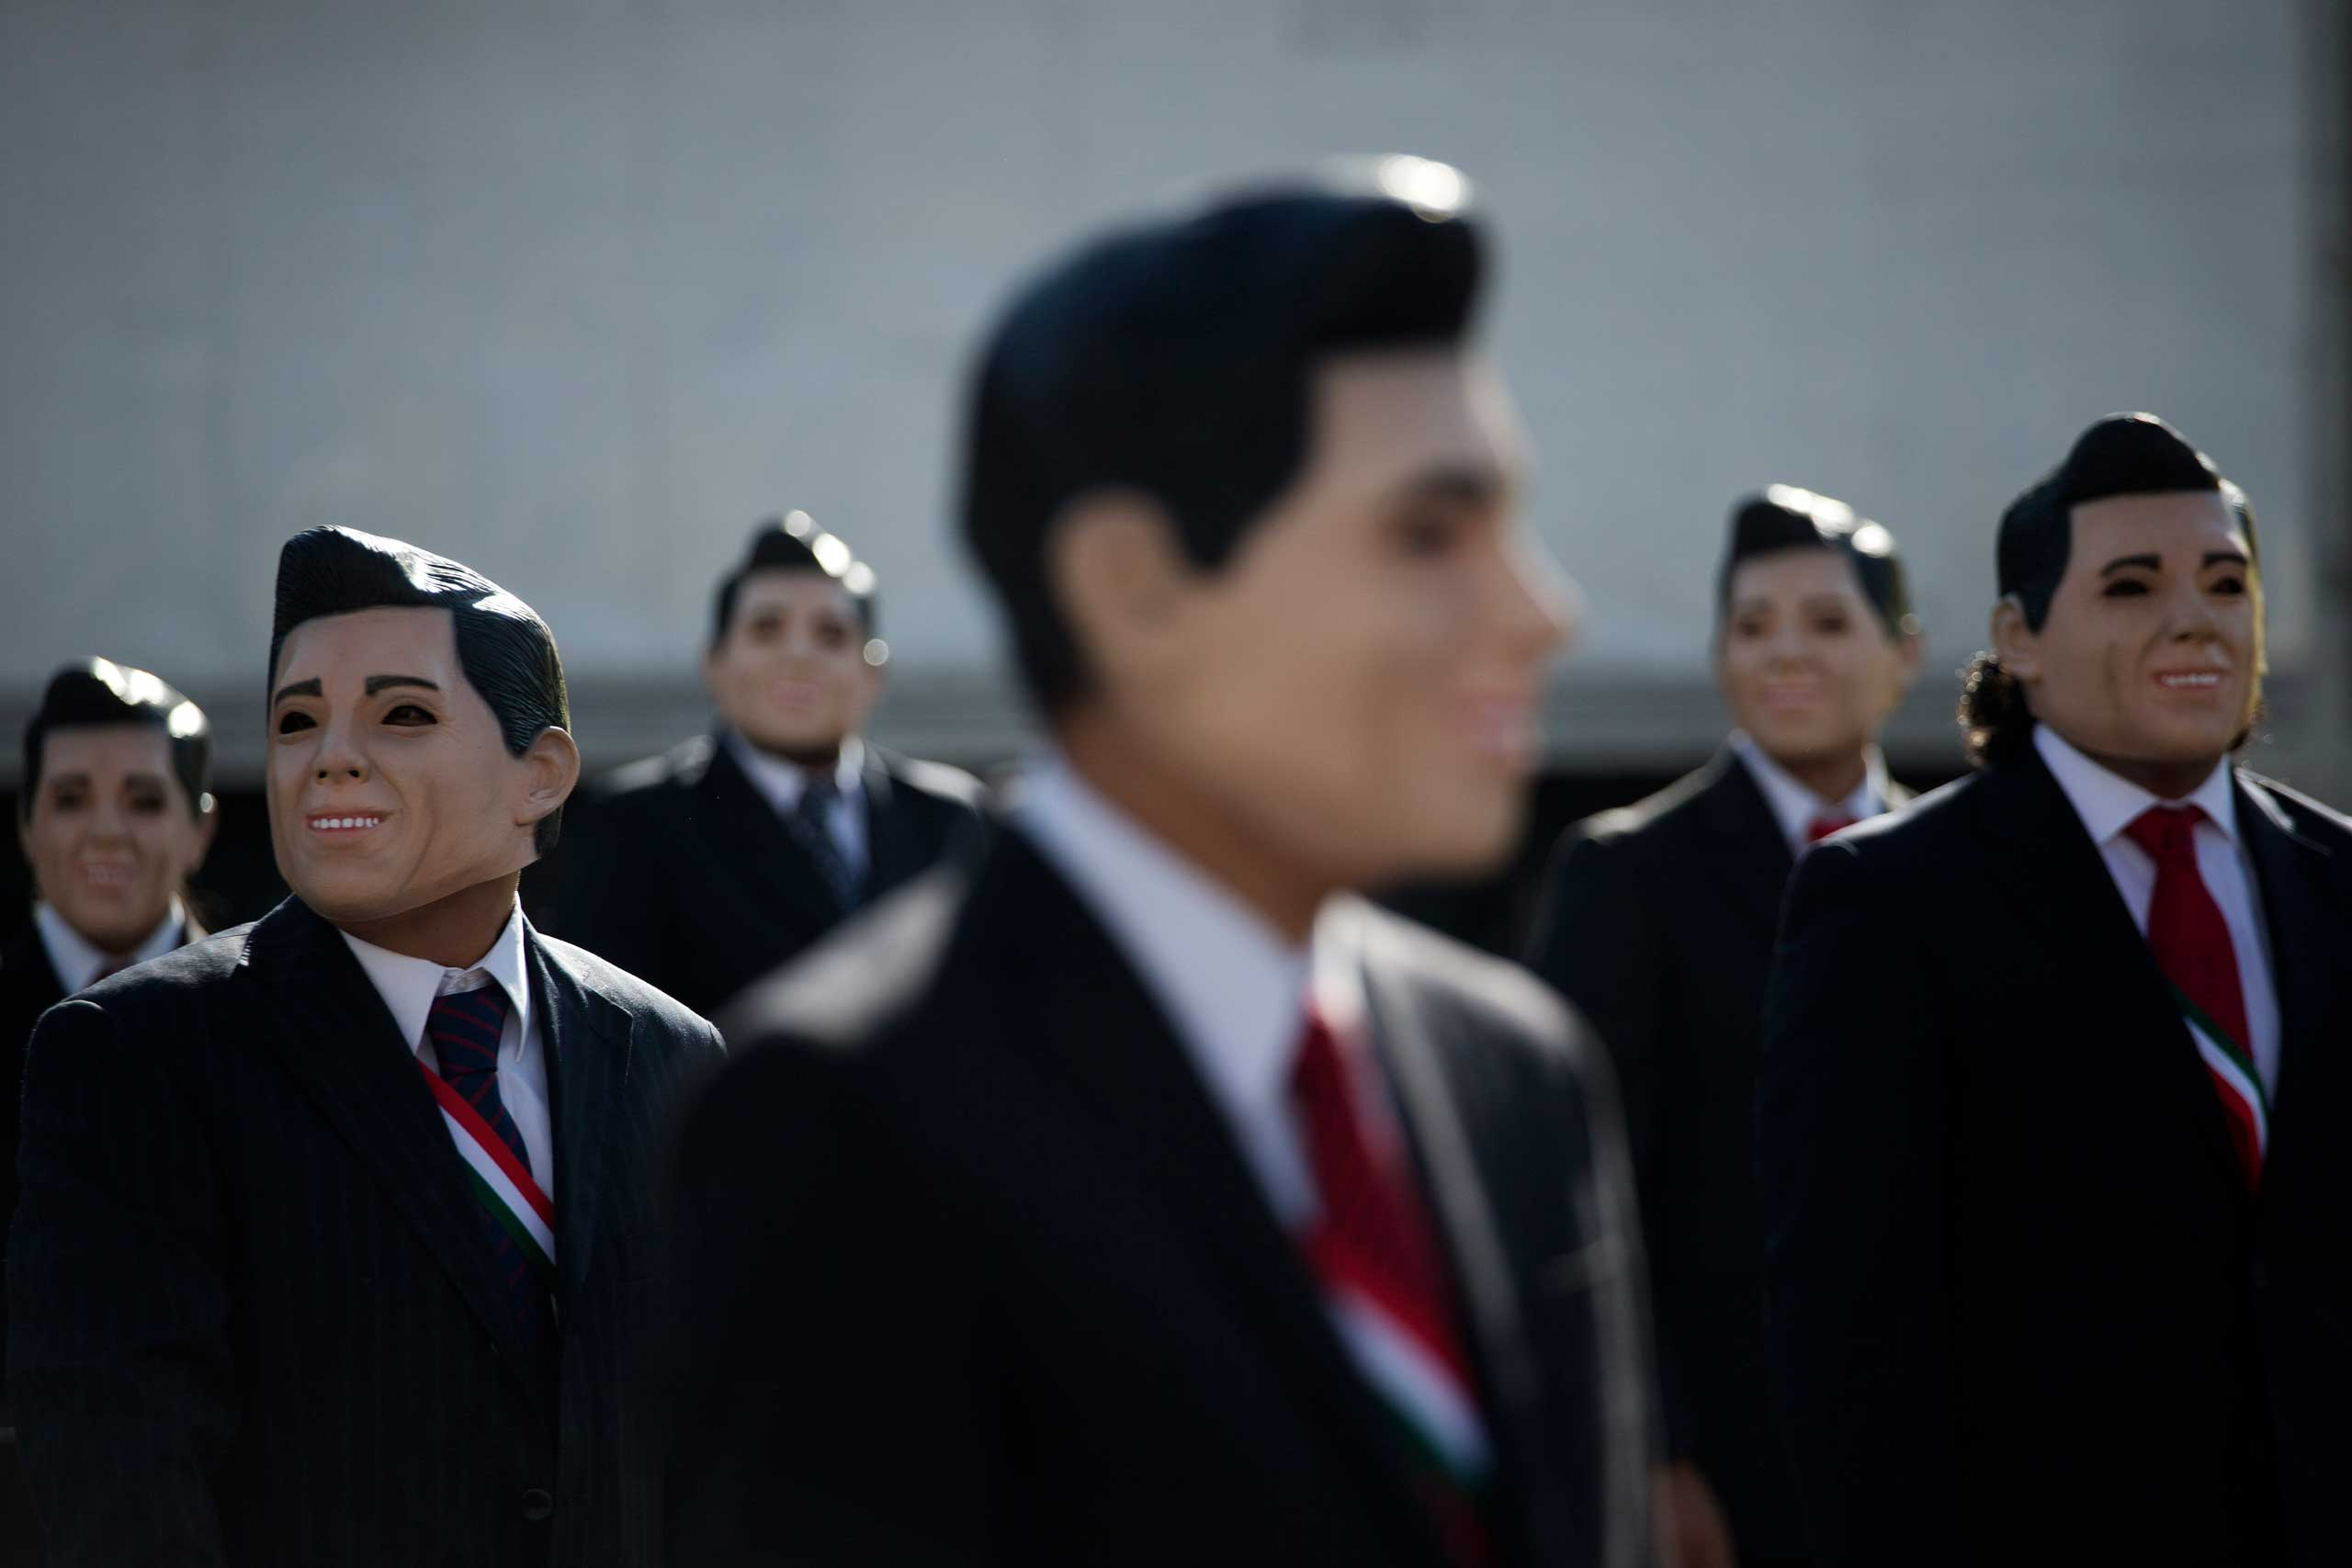 Oct. 23, 2014. Greenpeace protestors wear masks of Mexican President Enrique Pena Nieto as they demonstrate in front of the National Palace in Mexico City